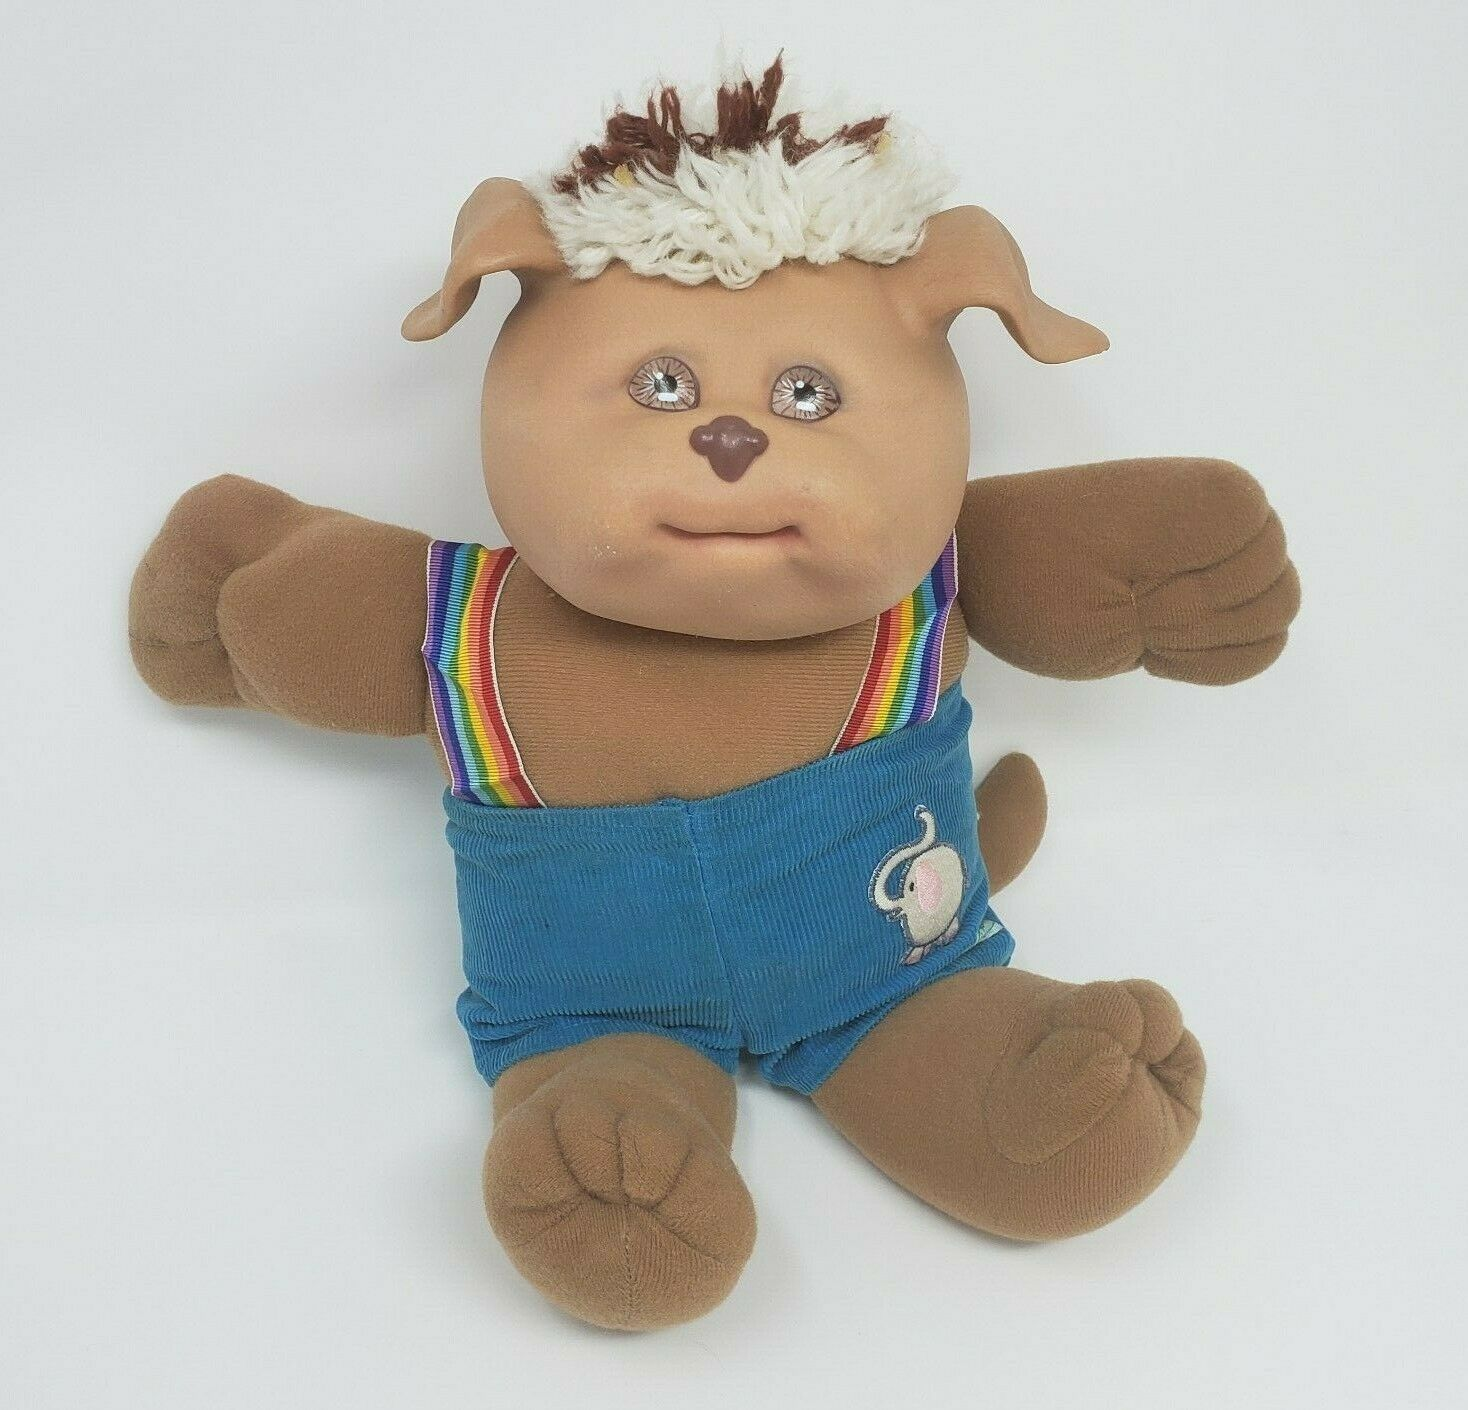 Primary image for VINTAGE 1983 CABBAGE PATCH KIDS KOOSAS DOLL STUFFED ANIMAL PLUSH TOY BLUE PANTS